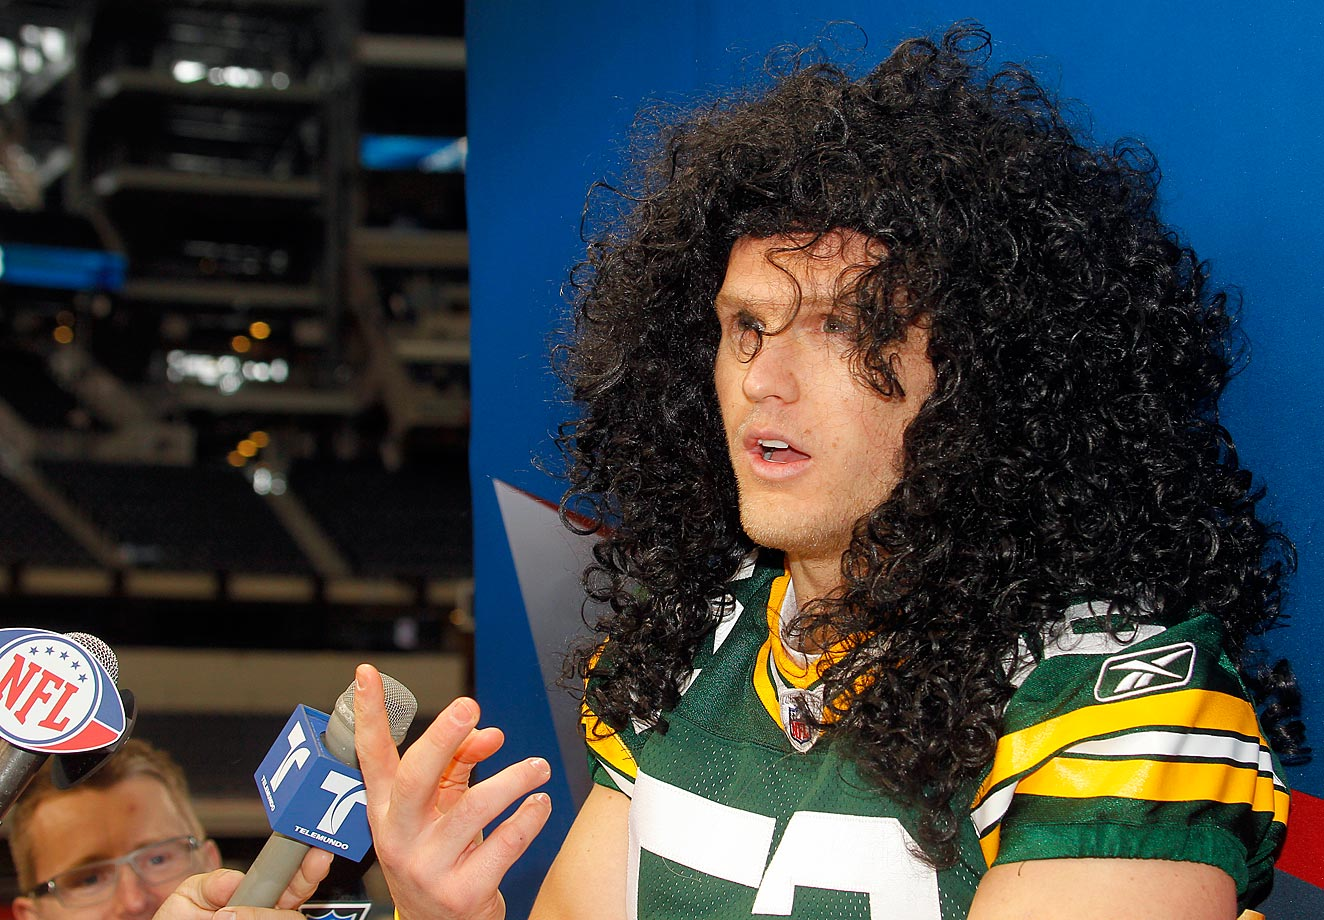 Clay Matthews was just one of many Packers and Steelers players to wear a Troy Polamalu wig for Media Day prior to Super Bowl XLV.